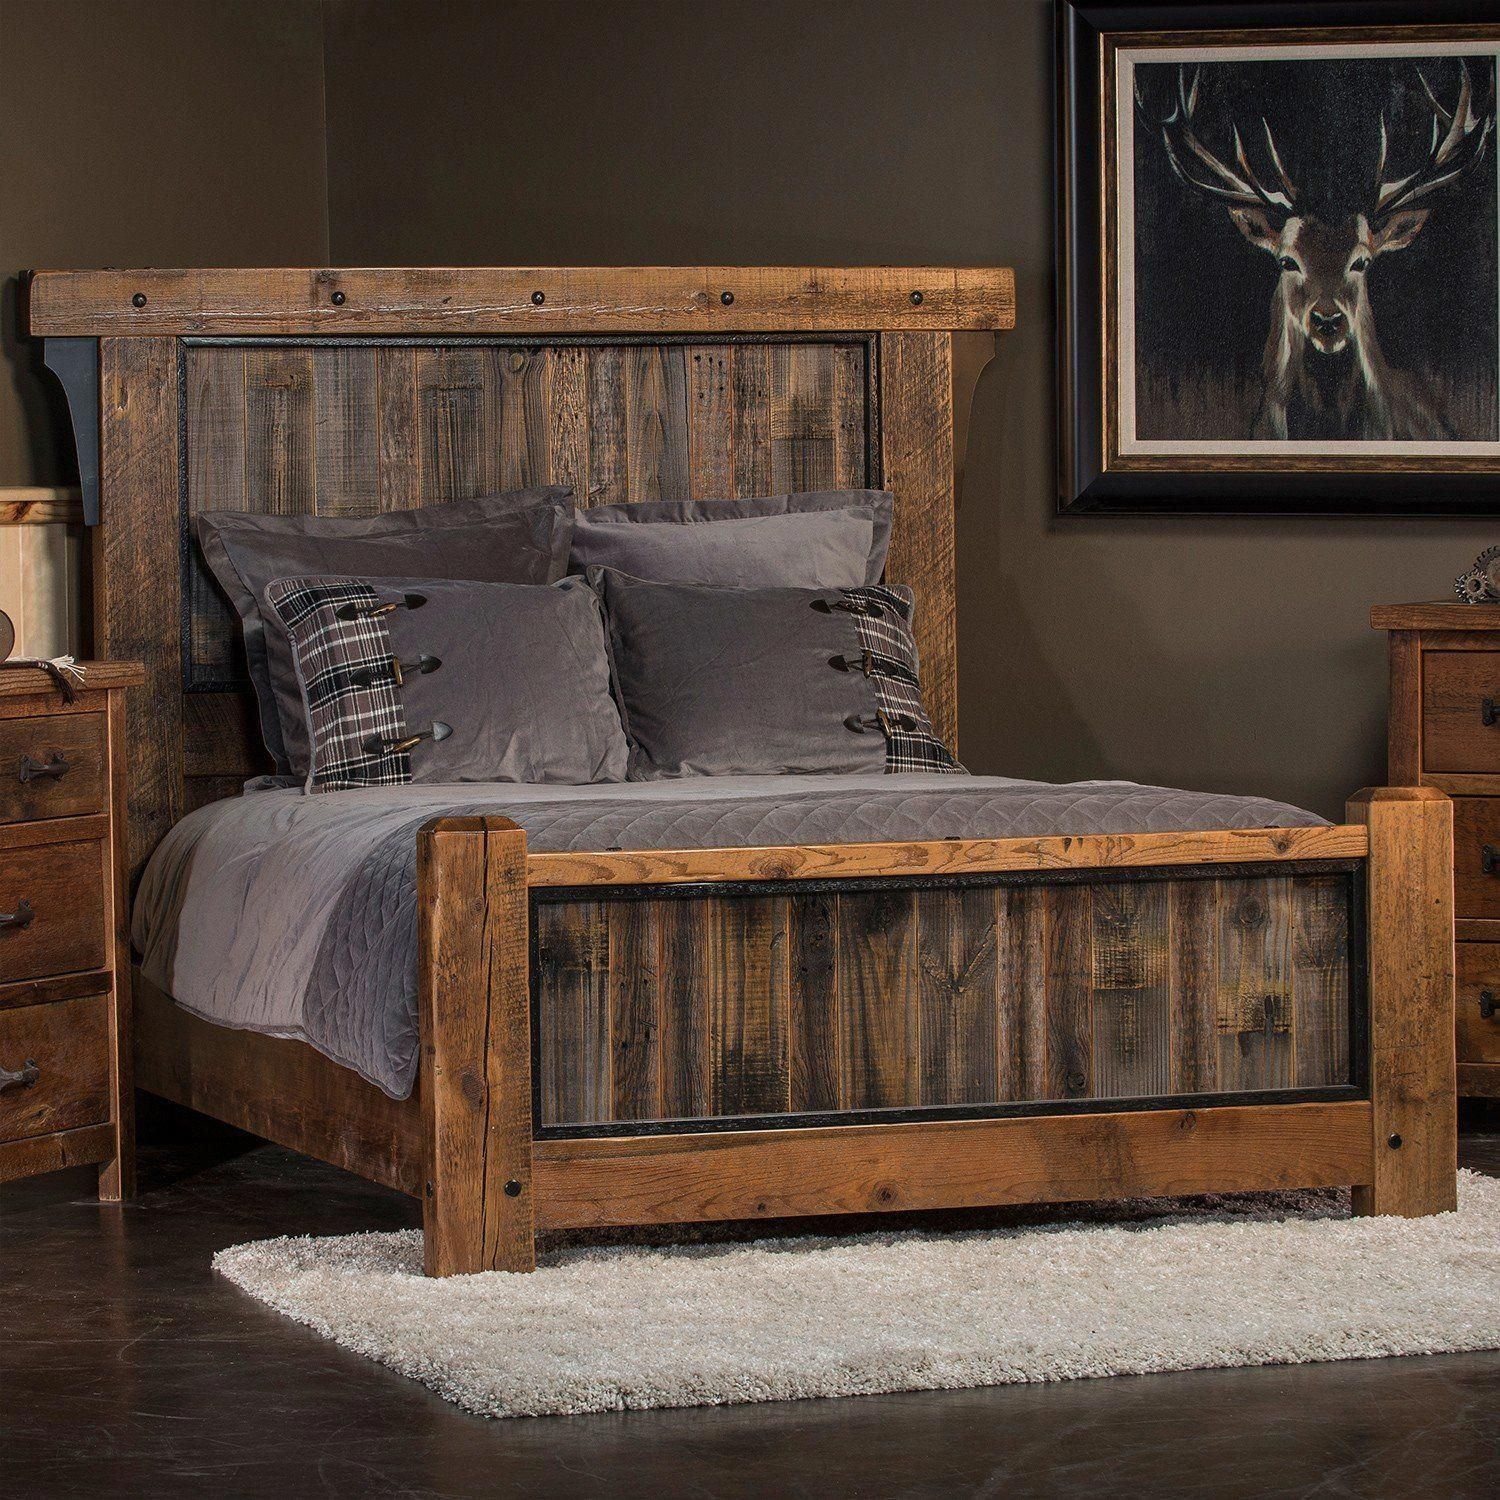 Adventure Mountain Timber Frame Panel Bed Furniture Rustic